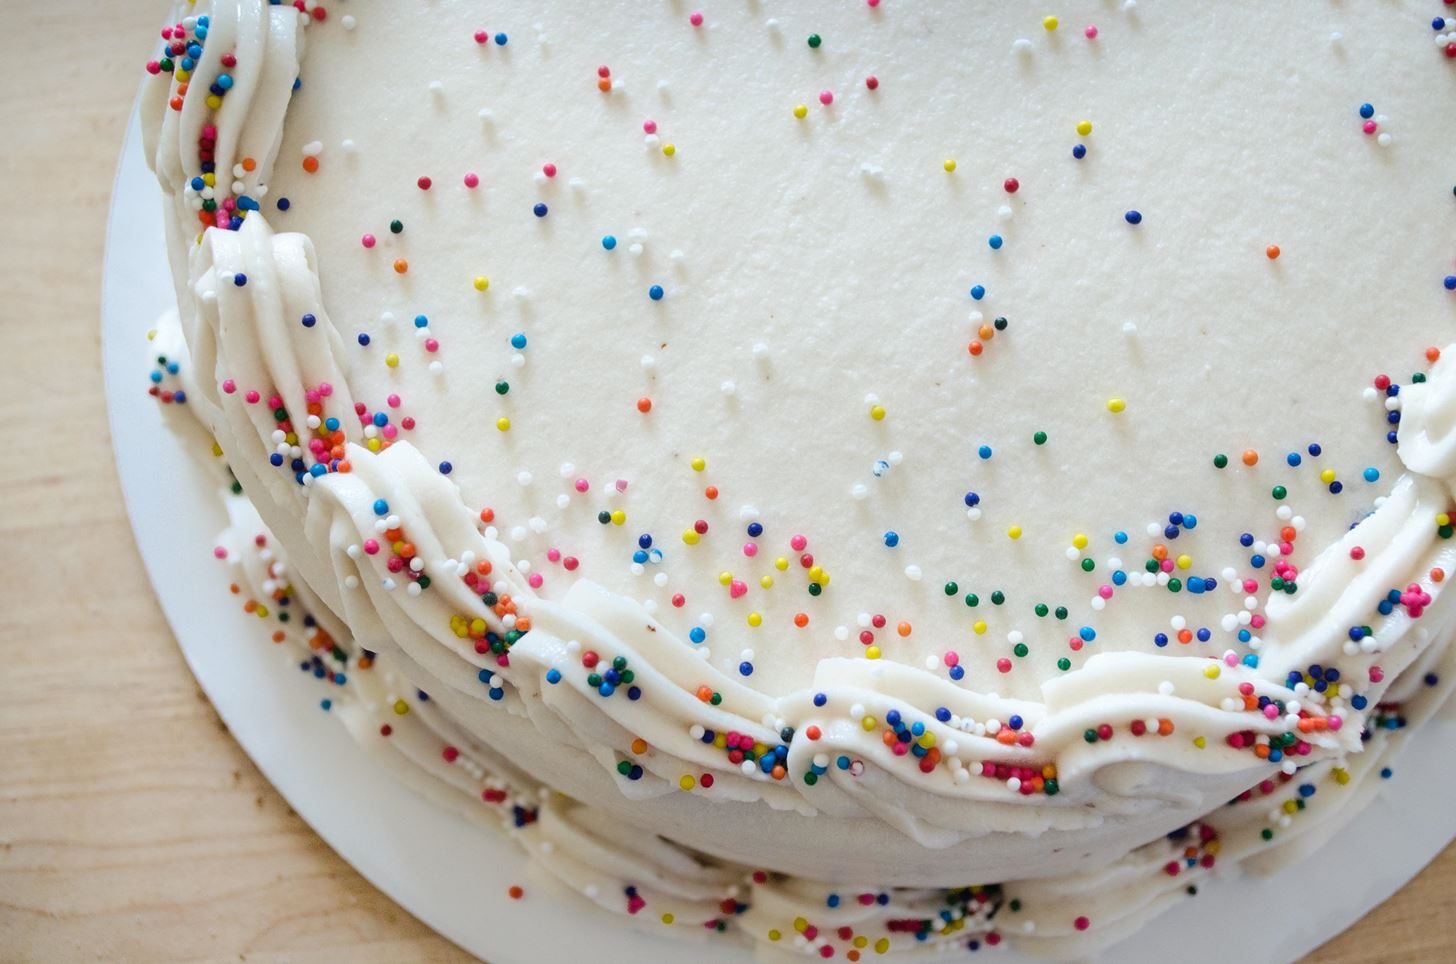 Skip the Fondant—Make Picture-Perfect Cakes with Paper Towels Instead